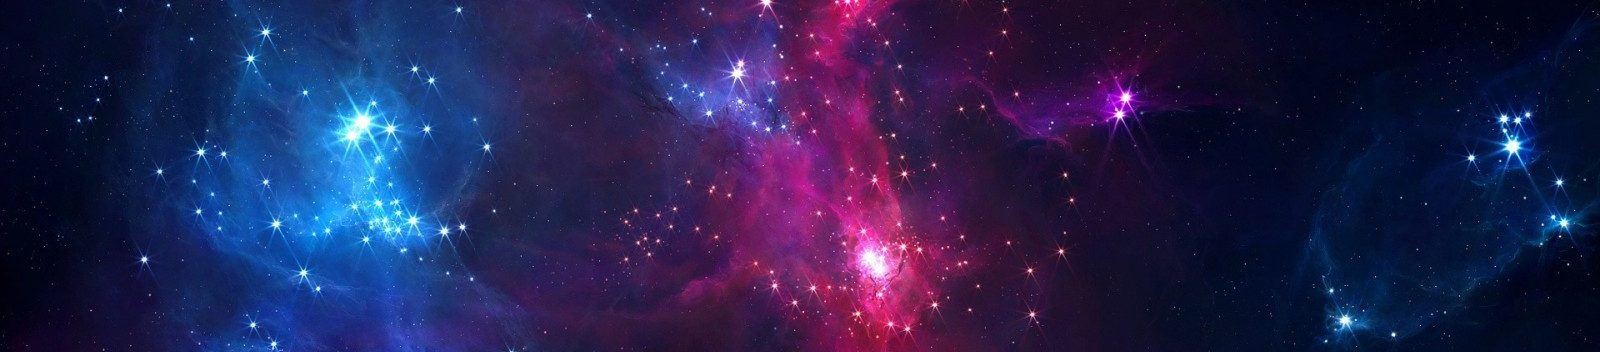 space_universe_stars-163289 - Copy